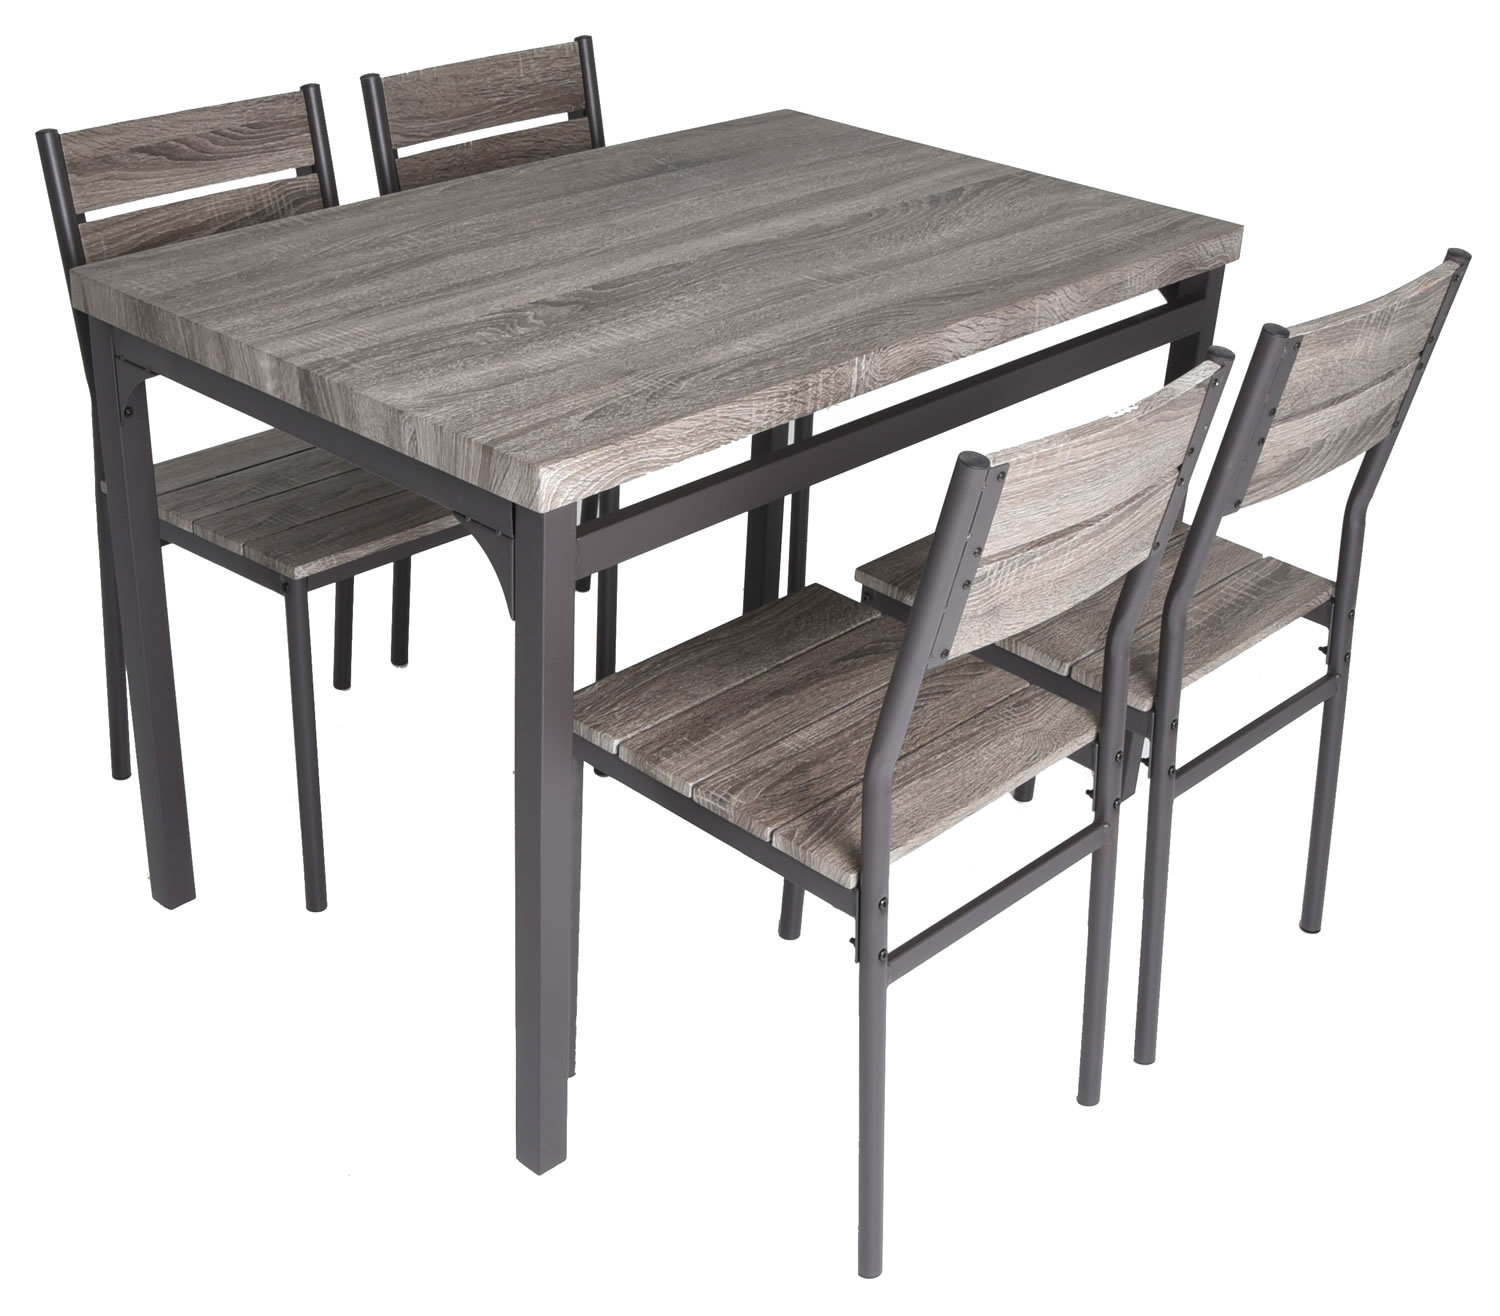 Mysliwiec 5 Piece Counter Height Breakfast Nook Dining Sets Throughout 2018 Gracie Oaks Emmeline 5 Piece Breakfast Nook Dining Set (#10 of 20)